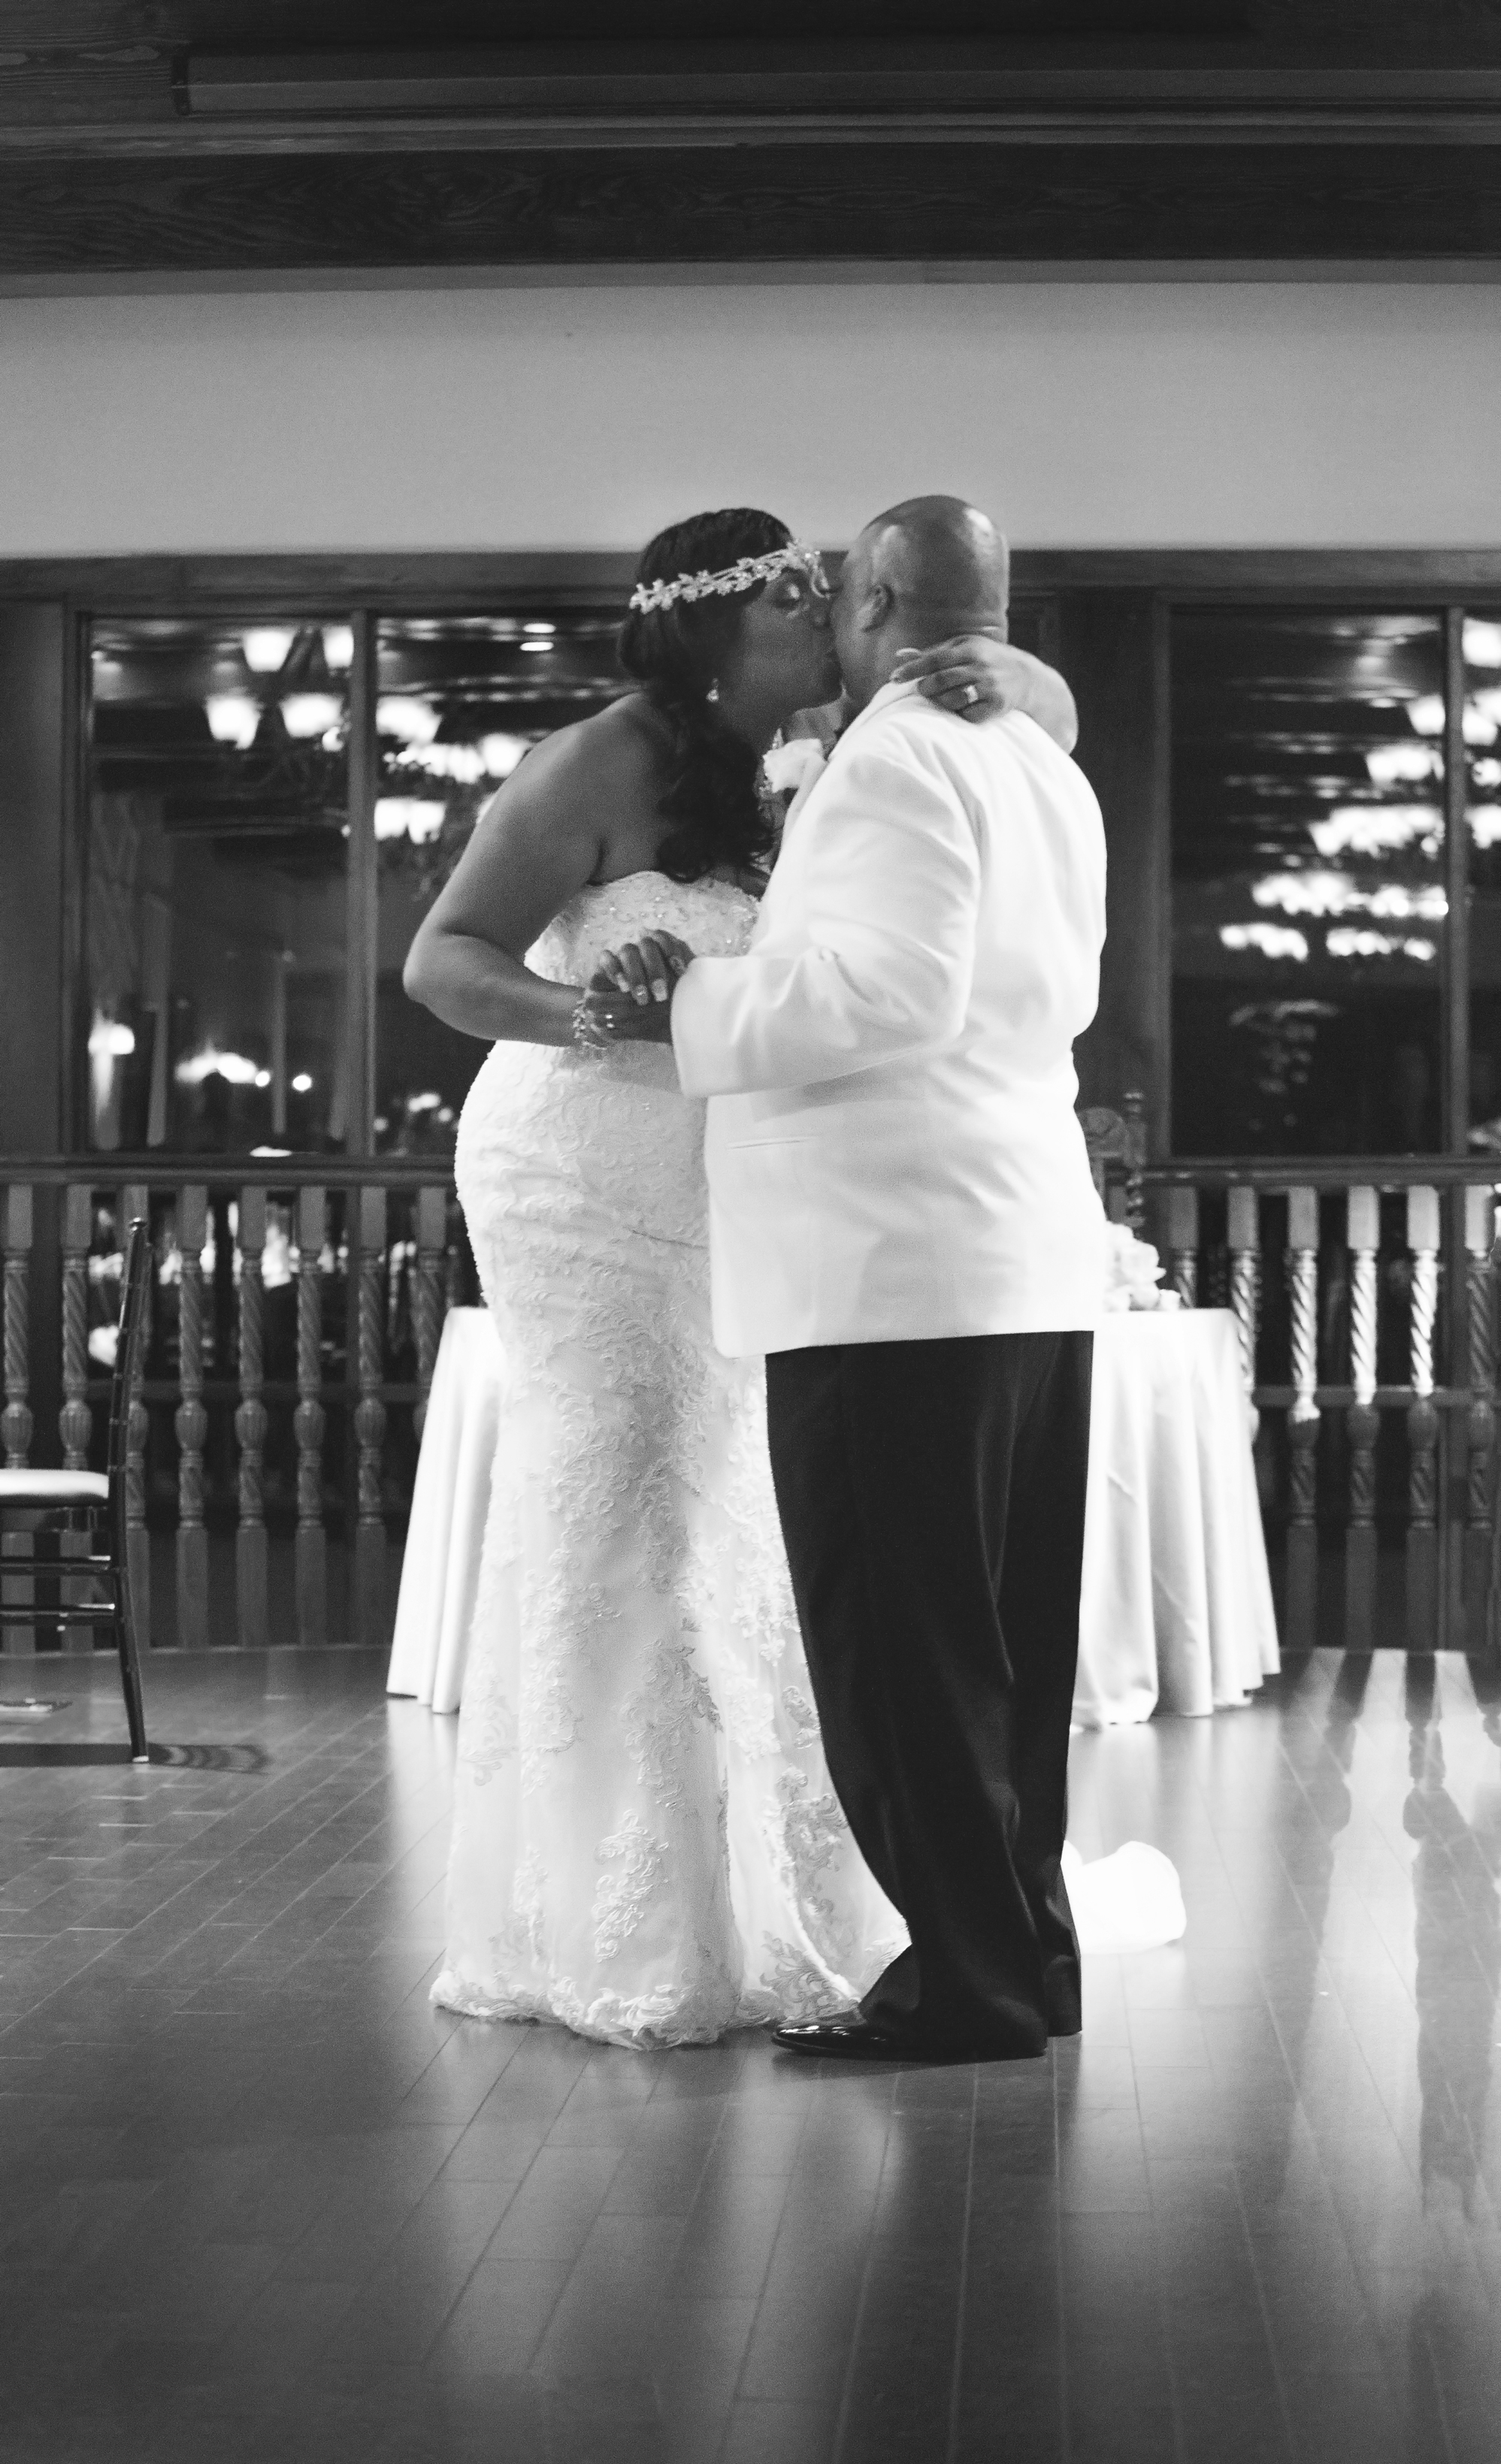 chamber-photography-wedding-tavares-pavilion-on-the-lake-18.jpeg